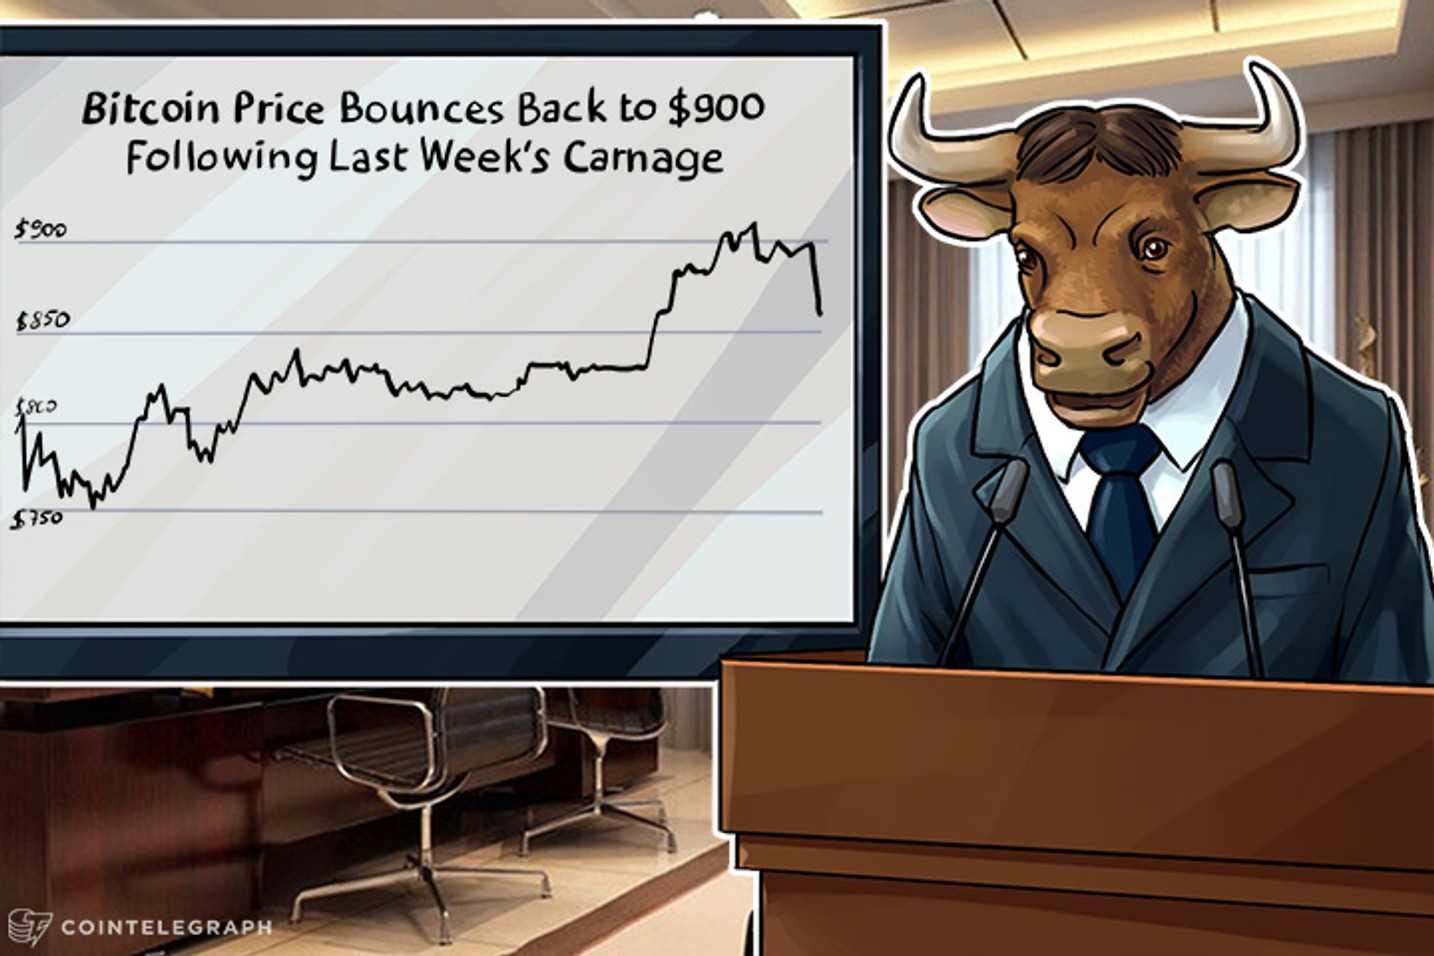 The Bitcoin Price Bounces Back to $900 Following Last Week's Carnage